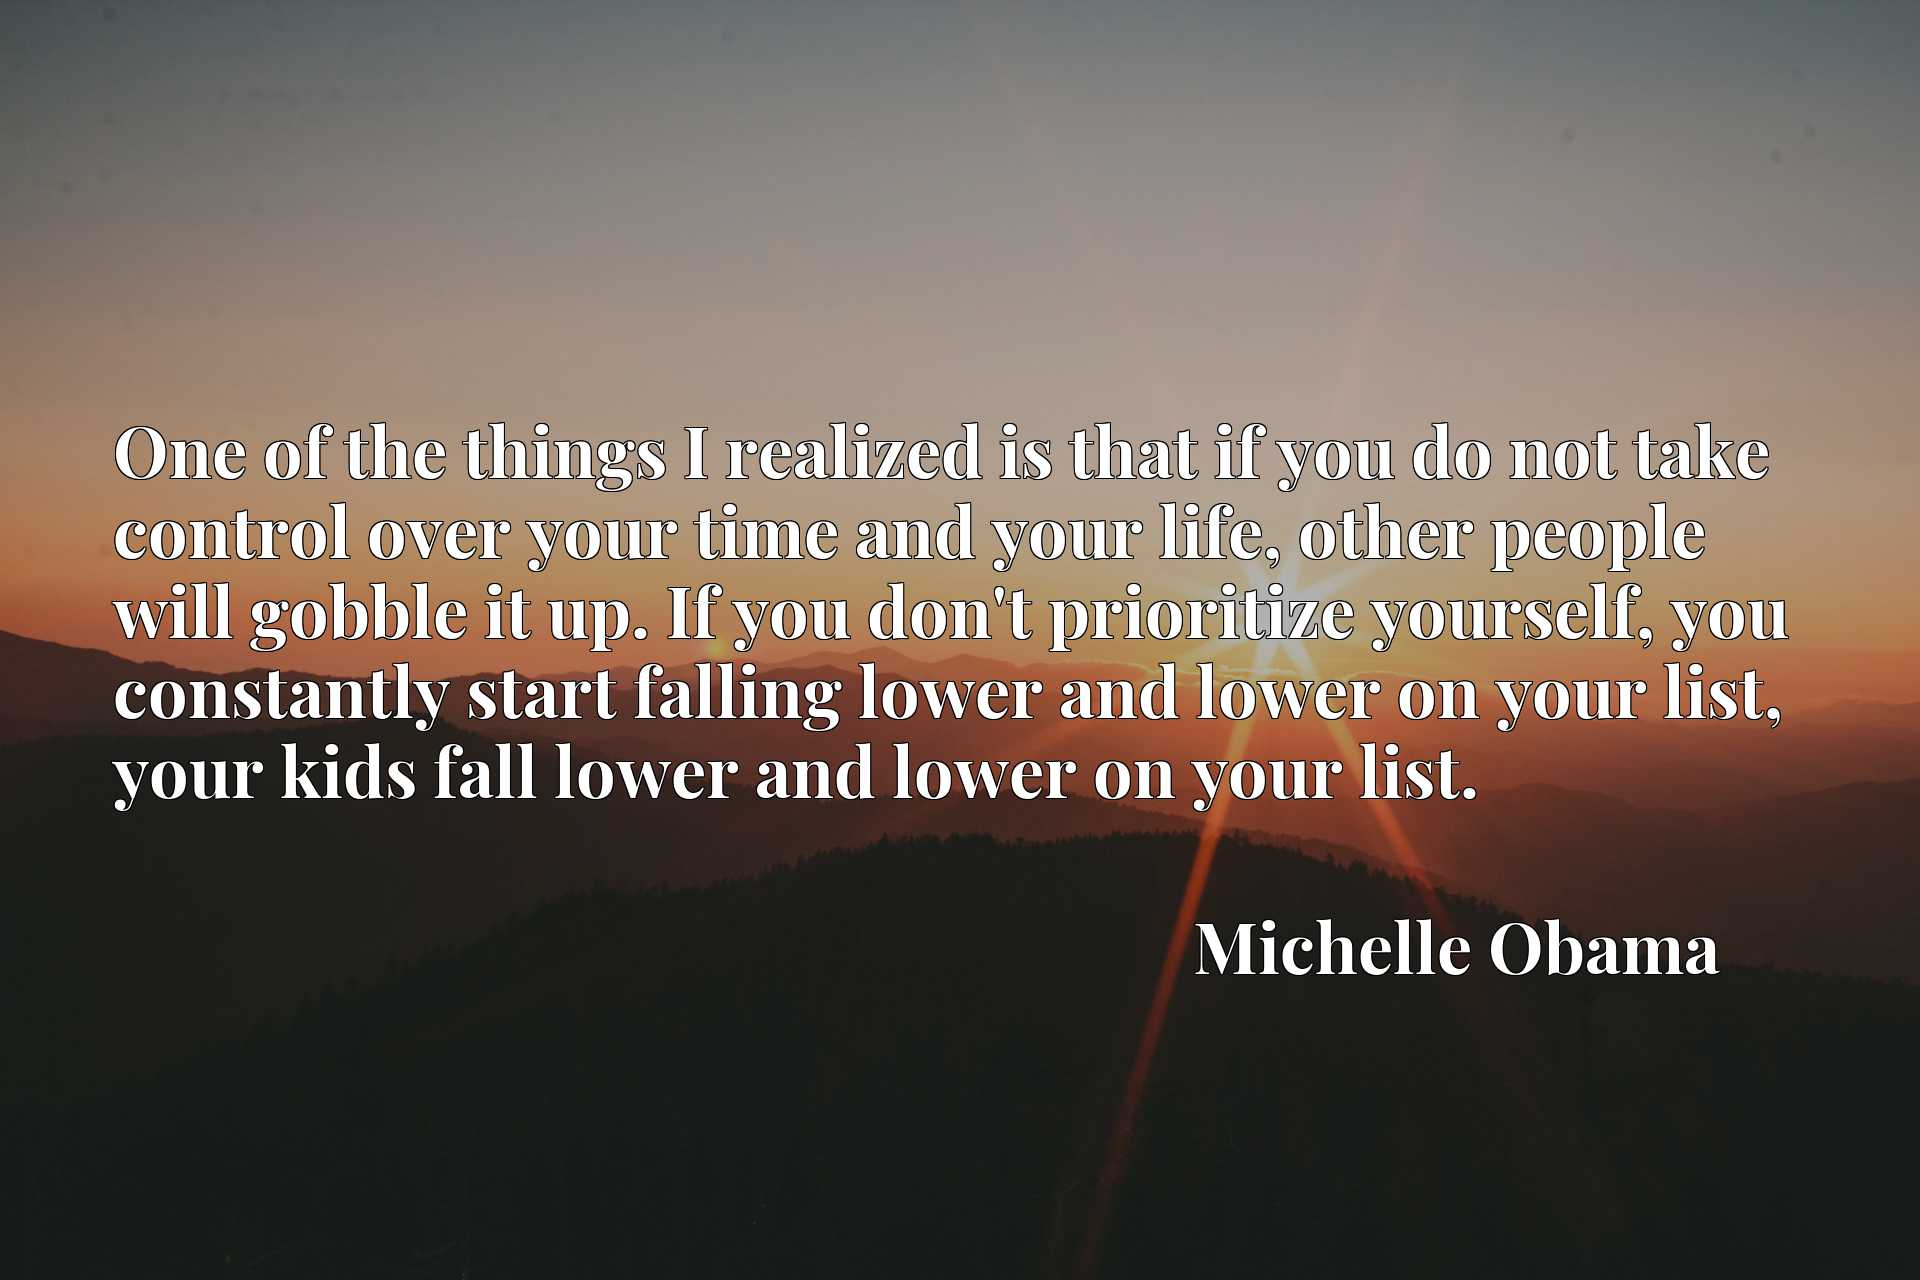 One of the things I realized is that if you do not take control over your time and your life, other people will gobble it up. If you don't prioritize yourself, you constantly start falling lower and lower on your list, your kids fall lower and lower on your list.